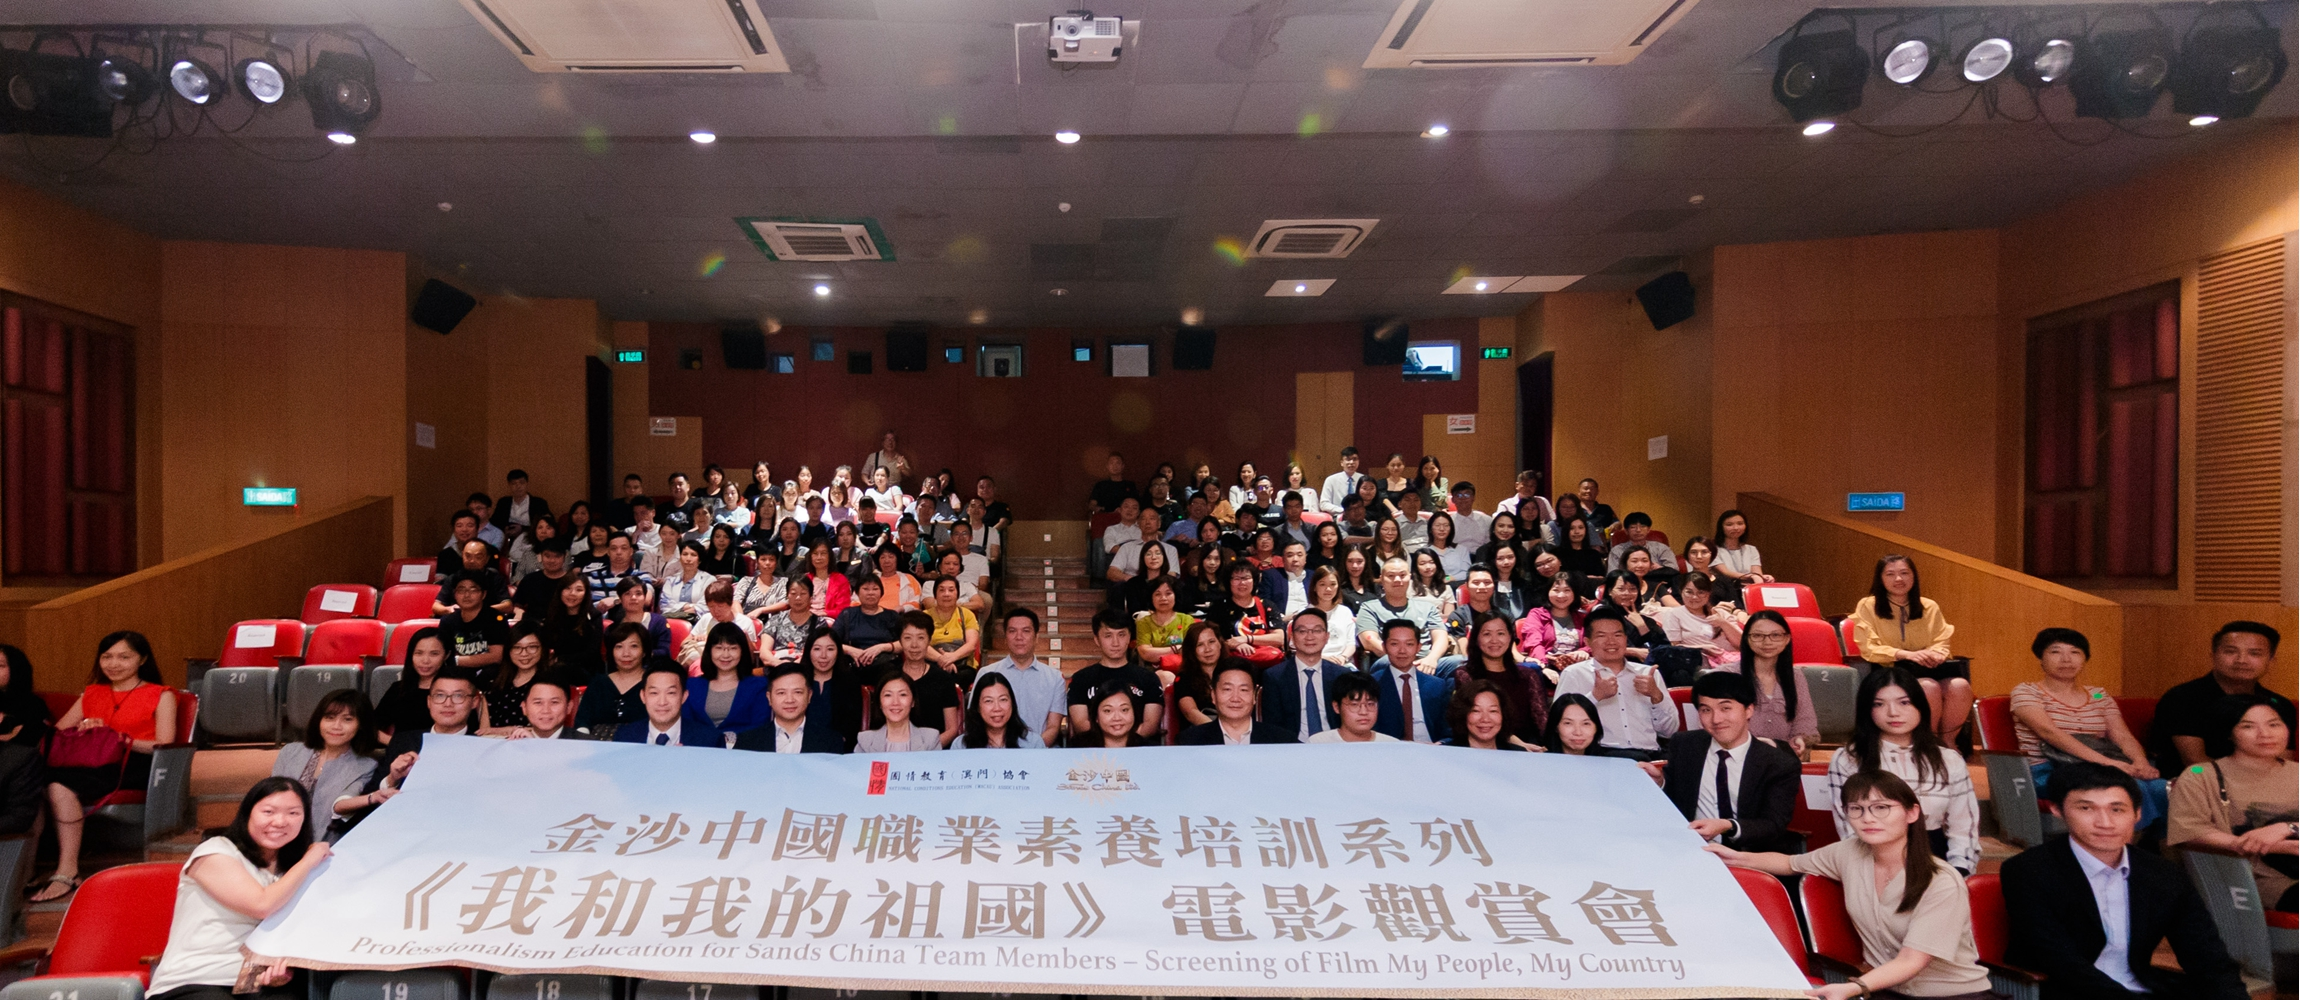 Sands China Team Members Watch My People My Country At Cinema Alegria The Venetian Macao